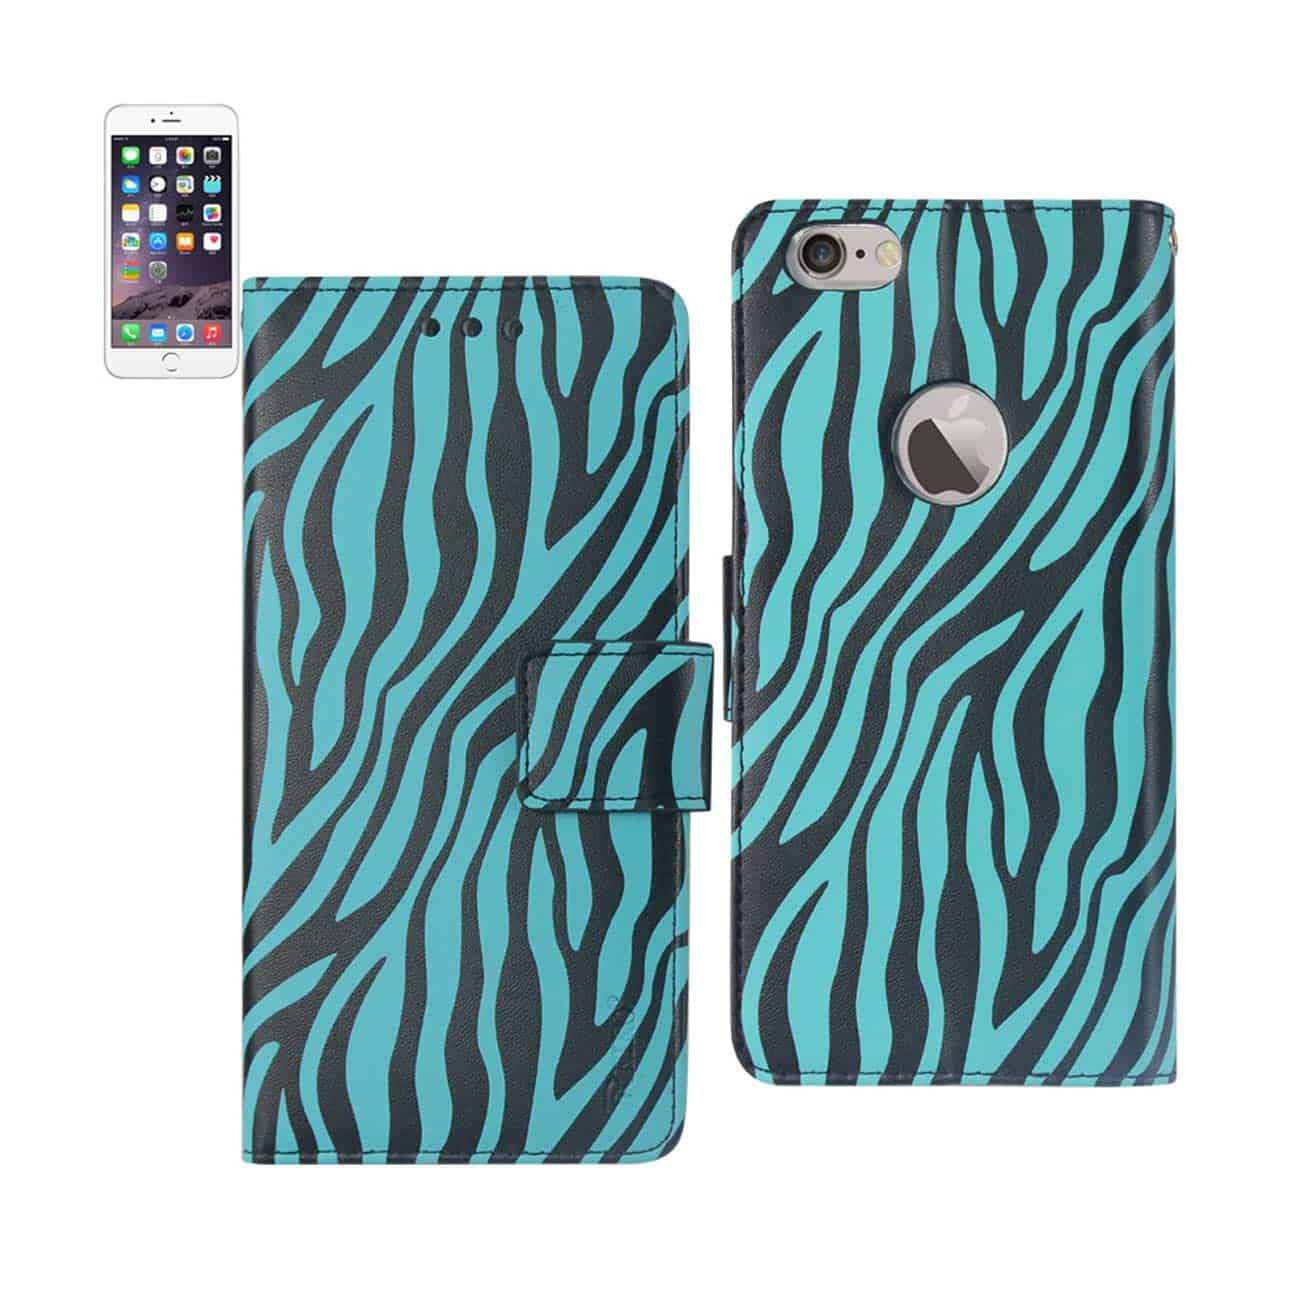 IPHONE 6 PLUS 3-IN-1 ANIMAL ZEBRA PRINT WALLET CASE IN BLUE